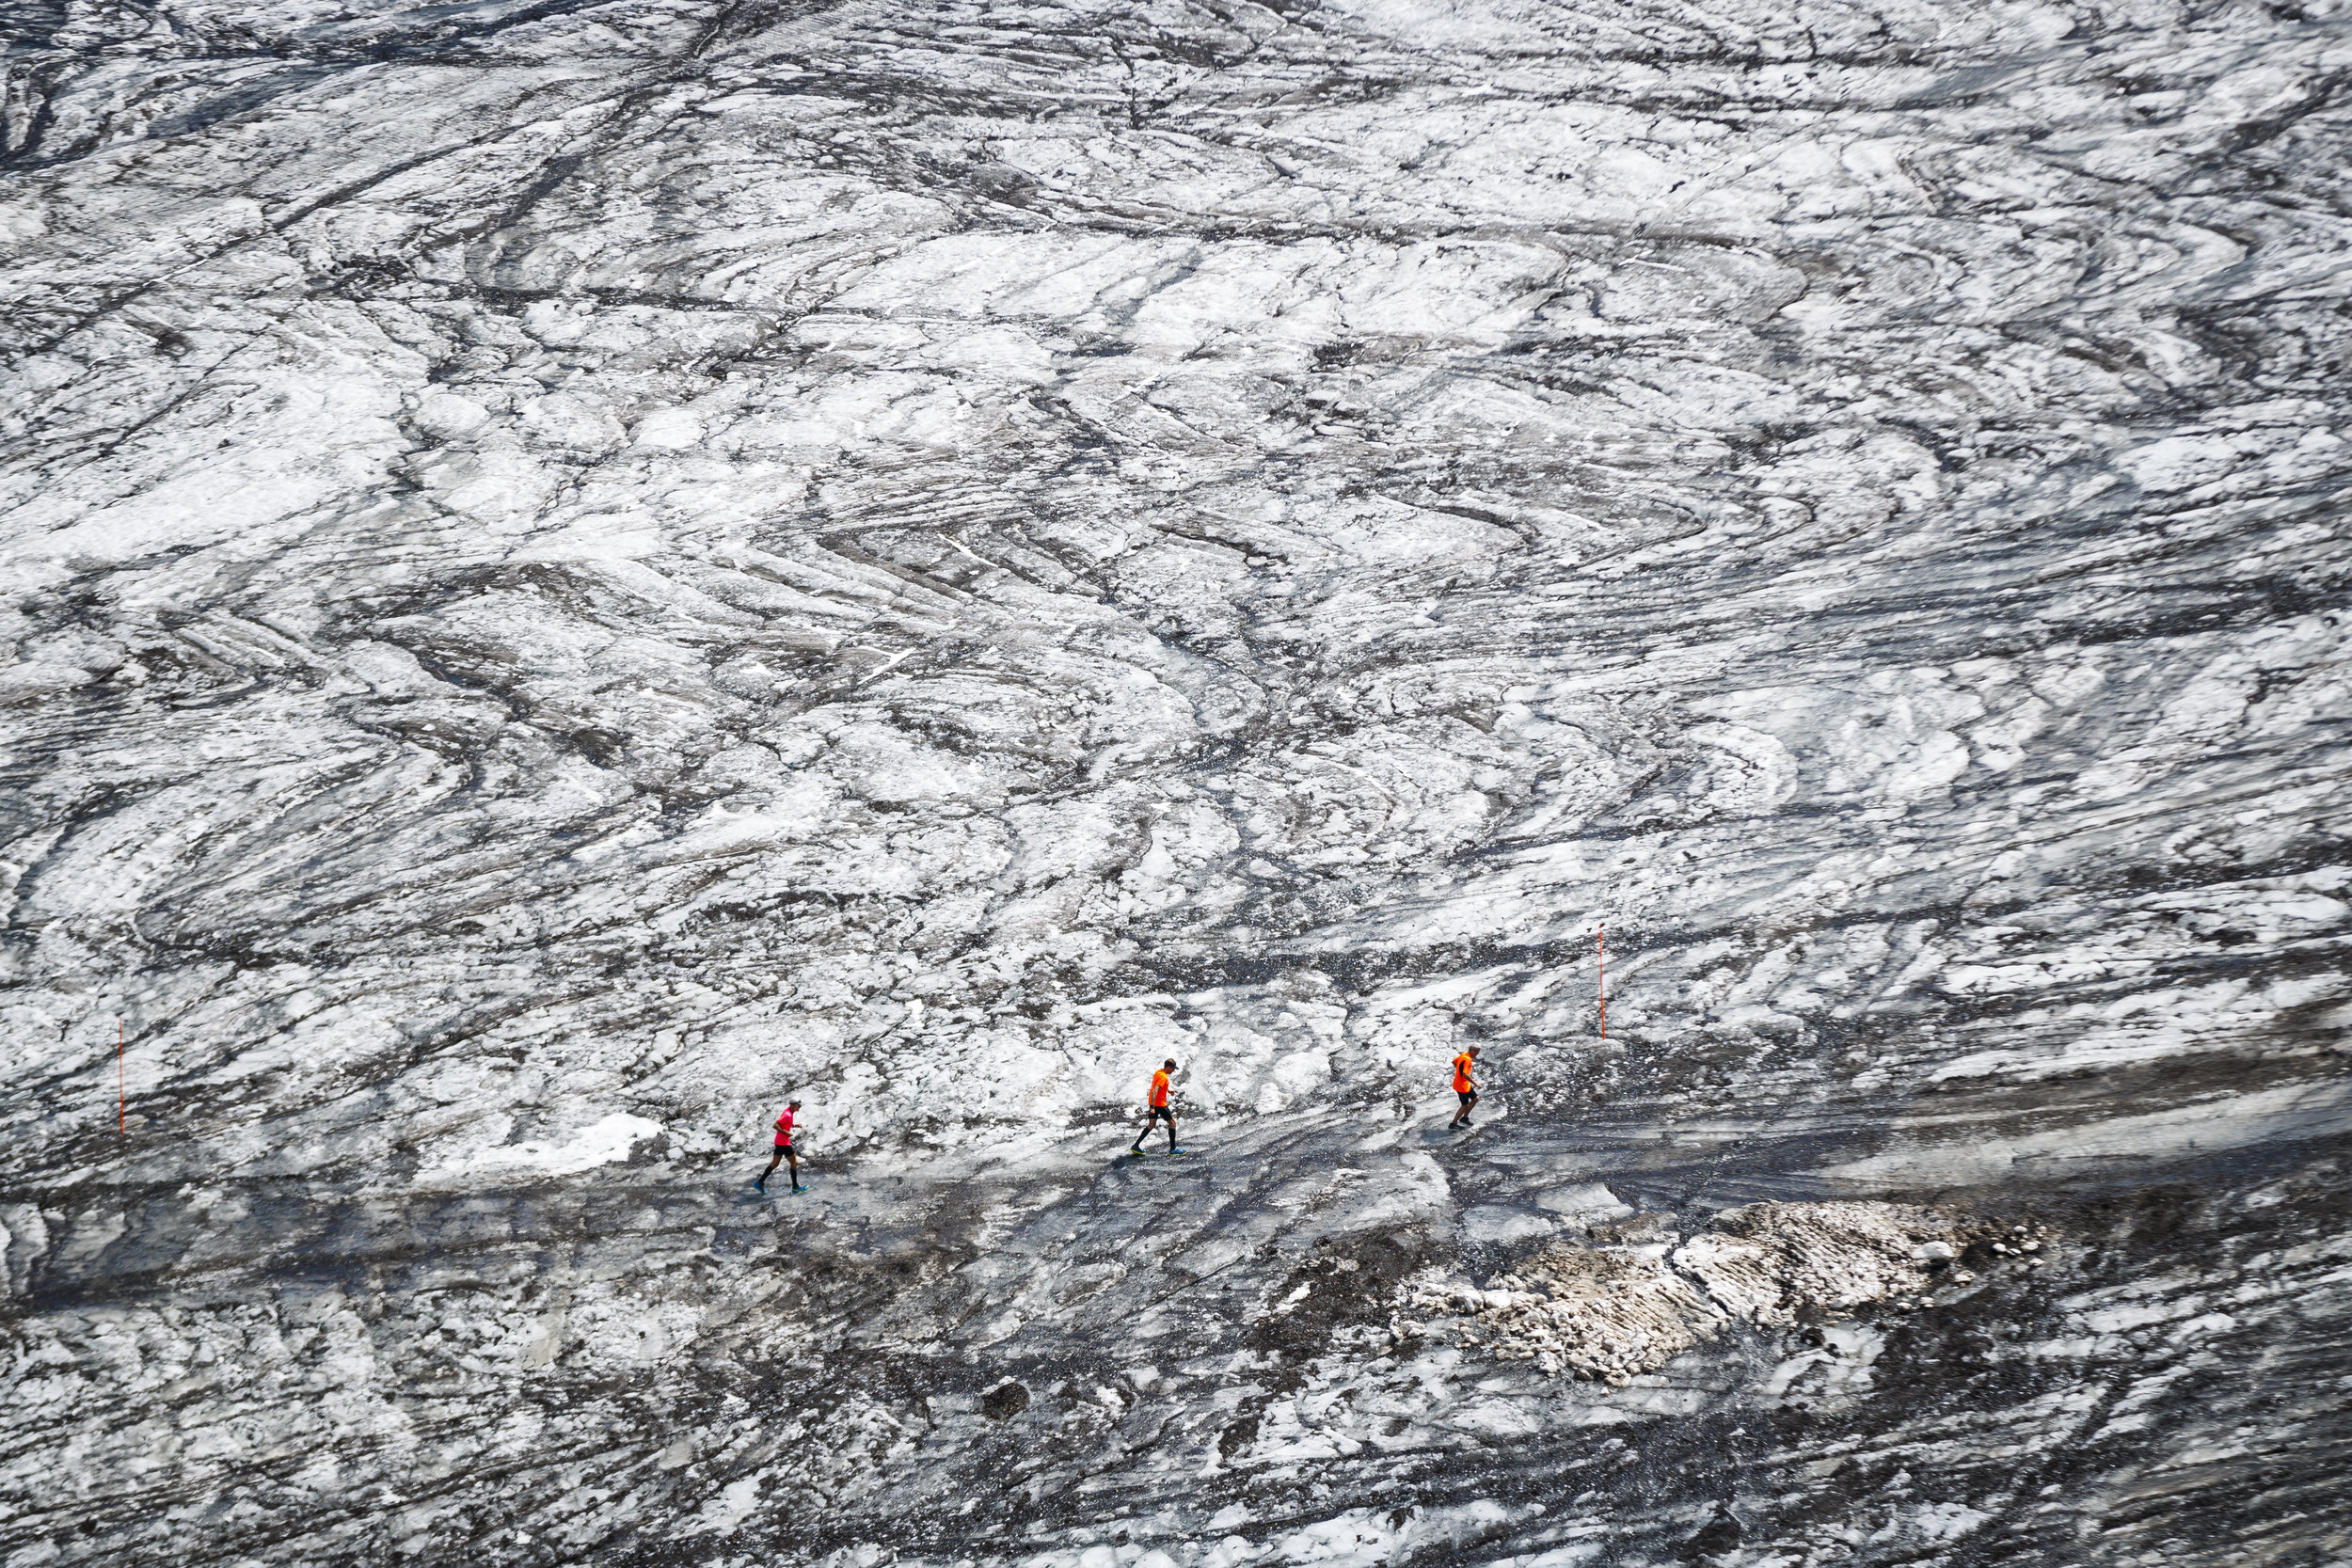 """Participants race on the Tsanfleuron glacier approaching the finish line of the Glacier 3000 run above the alpine resort of Les Diablerets, Switzerland, Saturday, August 4, 2018. The 26 kilometer-long course starts at 1050 meters above sea level in the village of Gstaad reaching a final altitude of 2950 meters on the """"Glacier 3000"""" for a total elevation gain of 2015 meters along the course. (KEYSTONE/Valentin Flauraud)"""